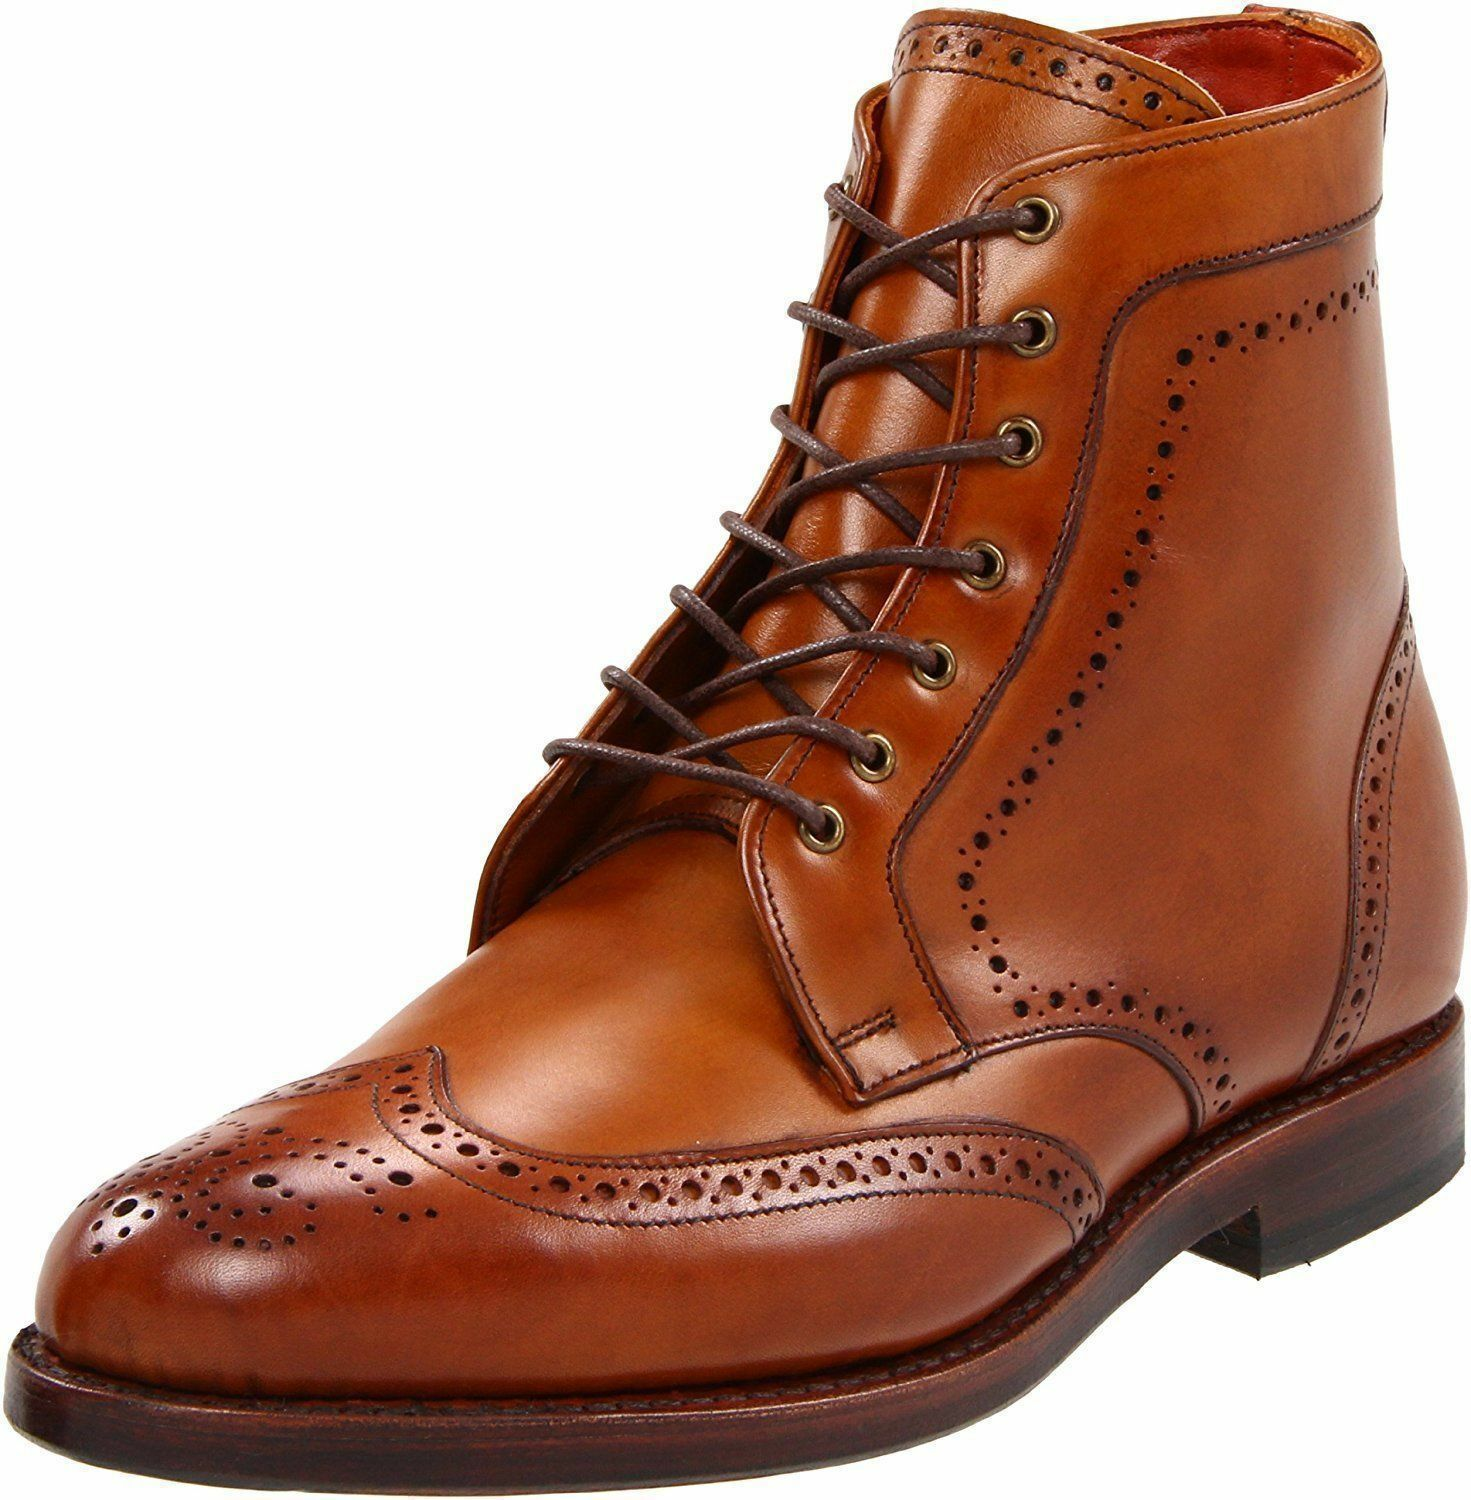 Mens Handmade Real Leather Boots High Ankle Genuine Leather Chelsea shoes